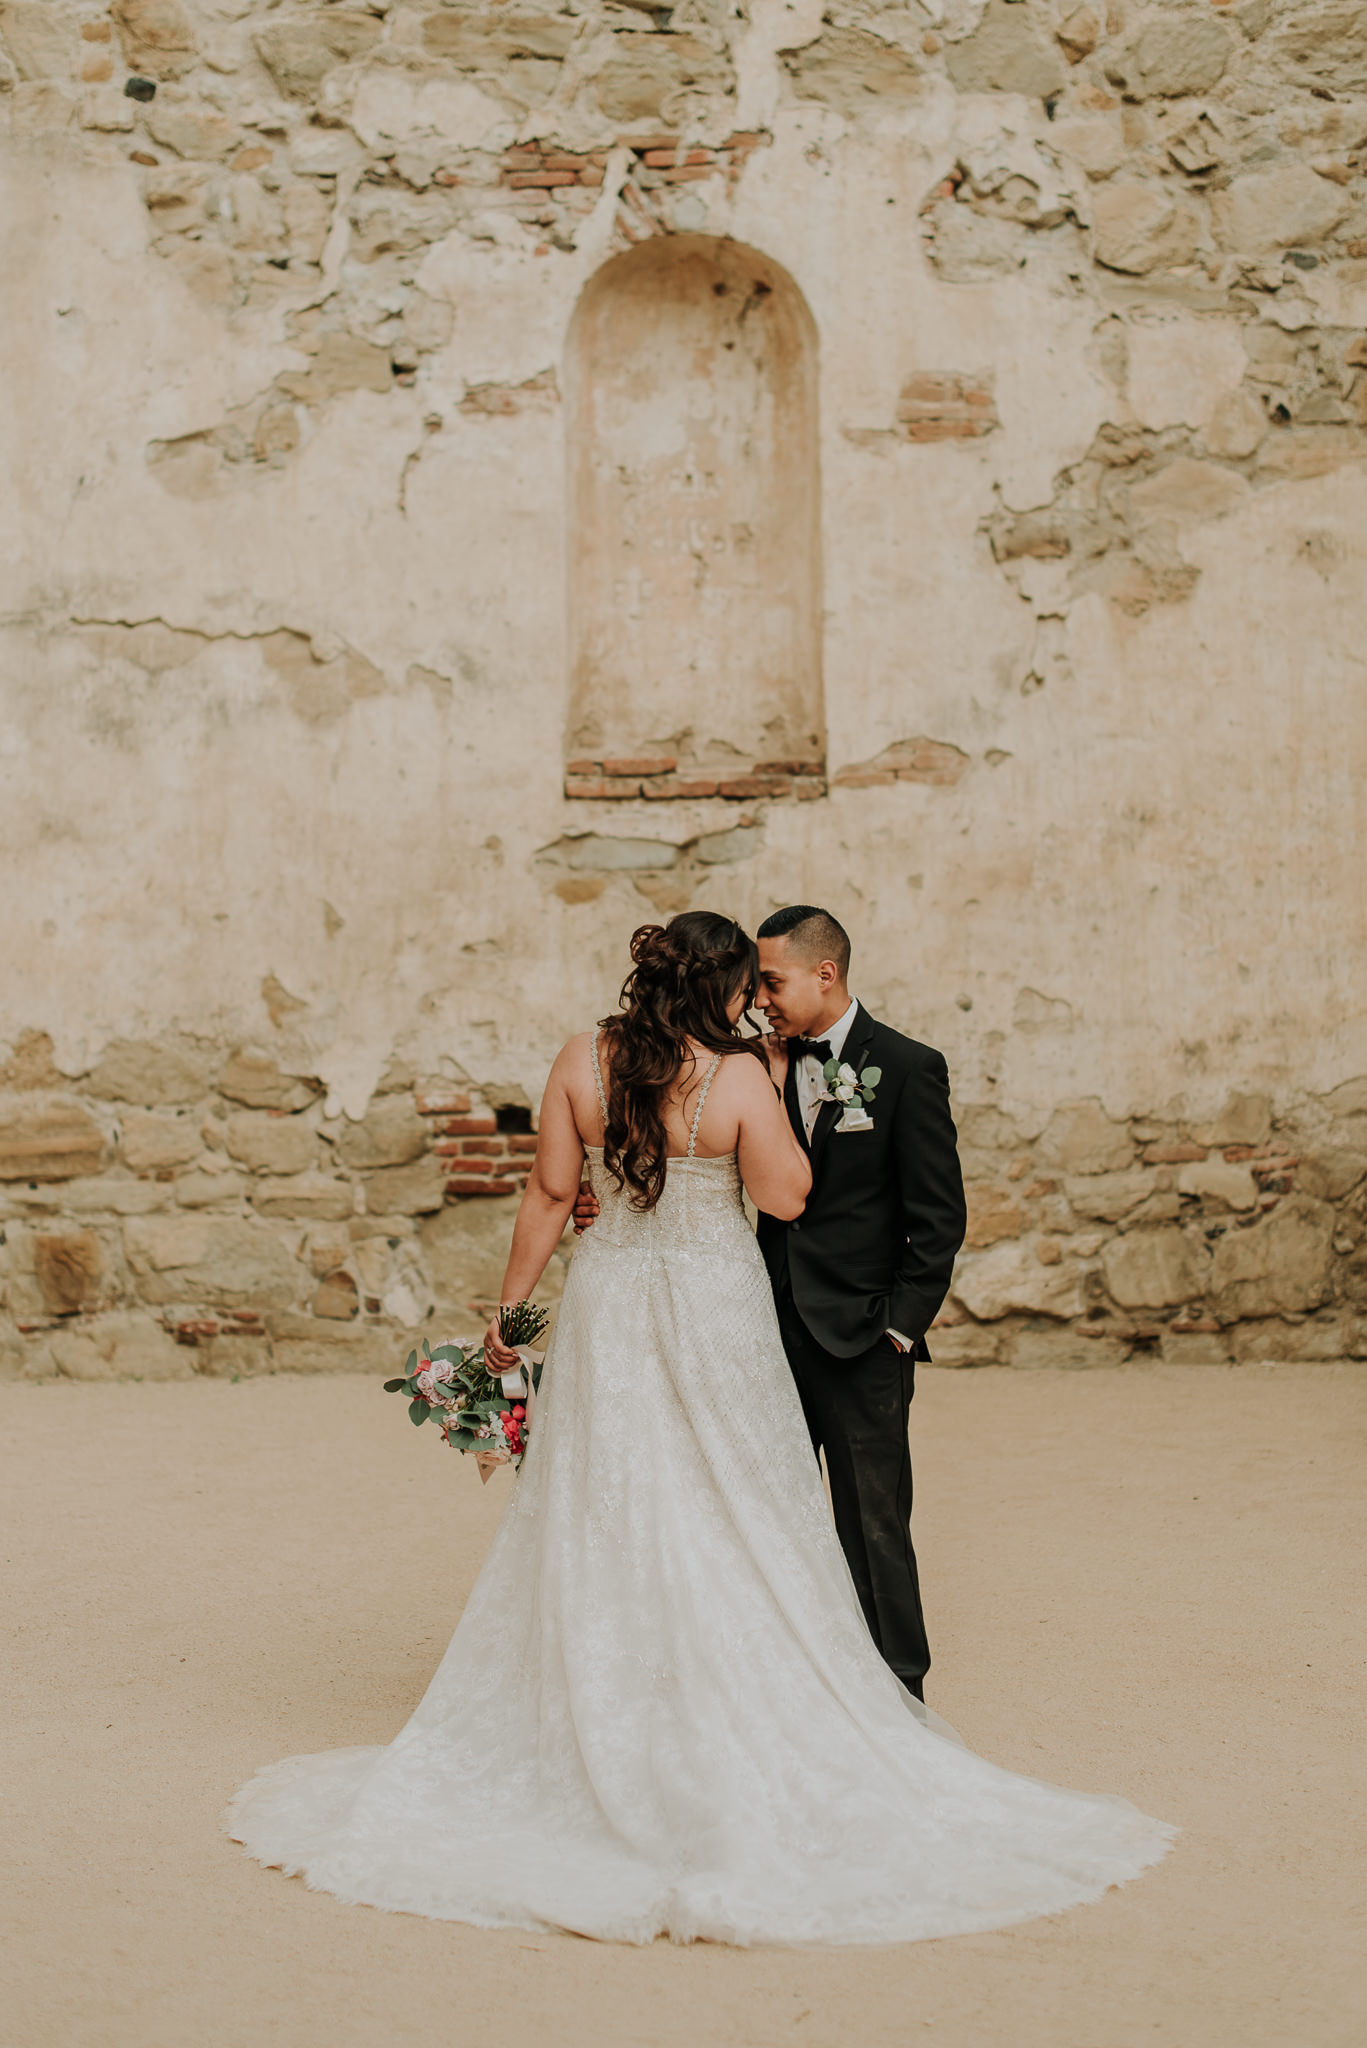 2019-04-05_Brittany_and_Nick_-_Married_-_San_Juan_Capistrano-105.jpg